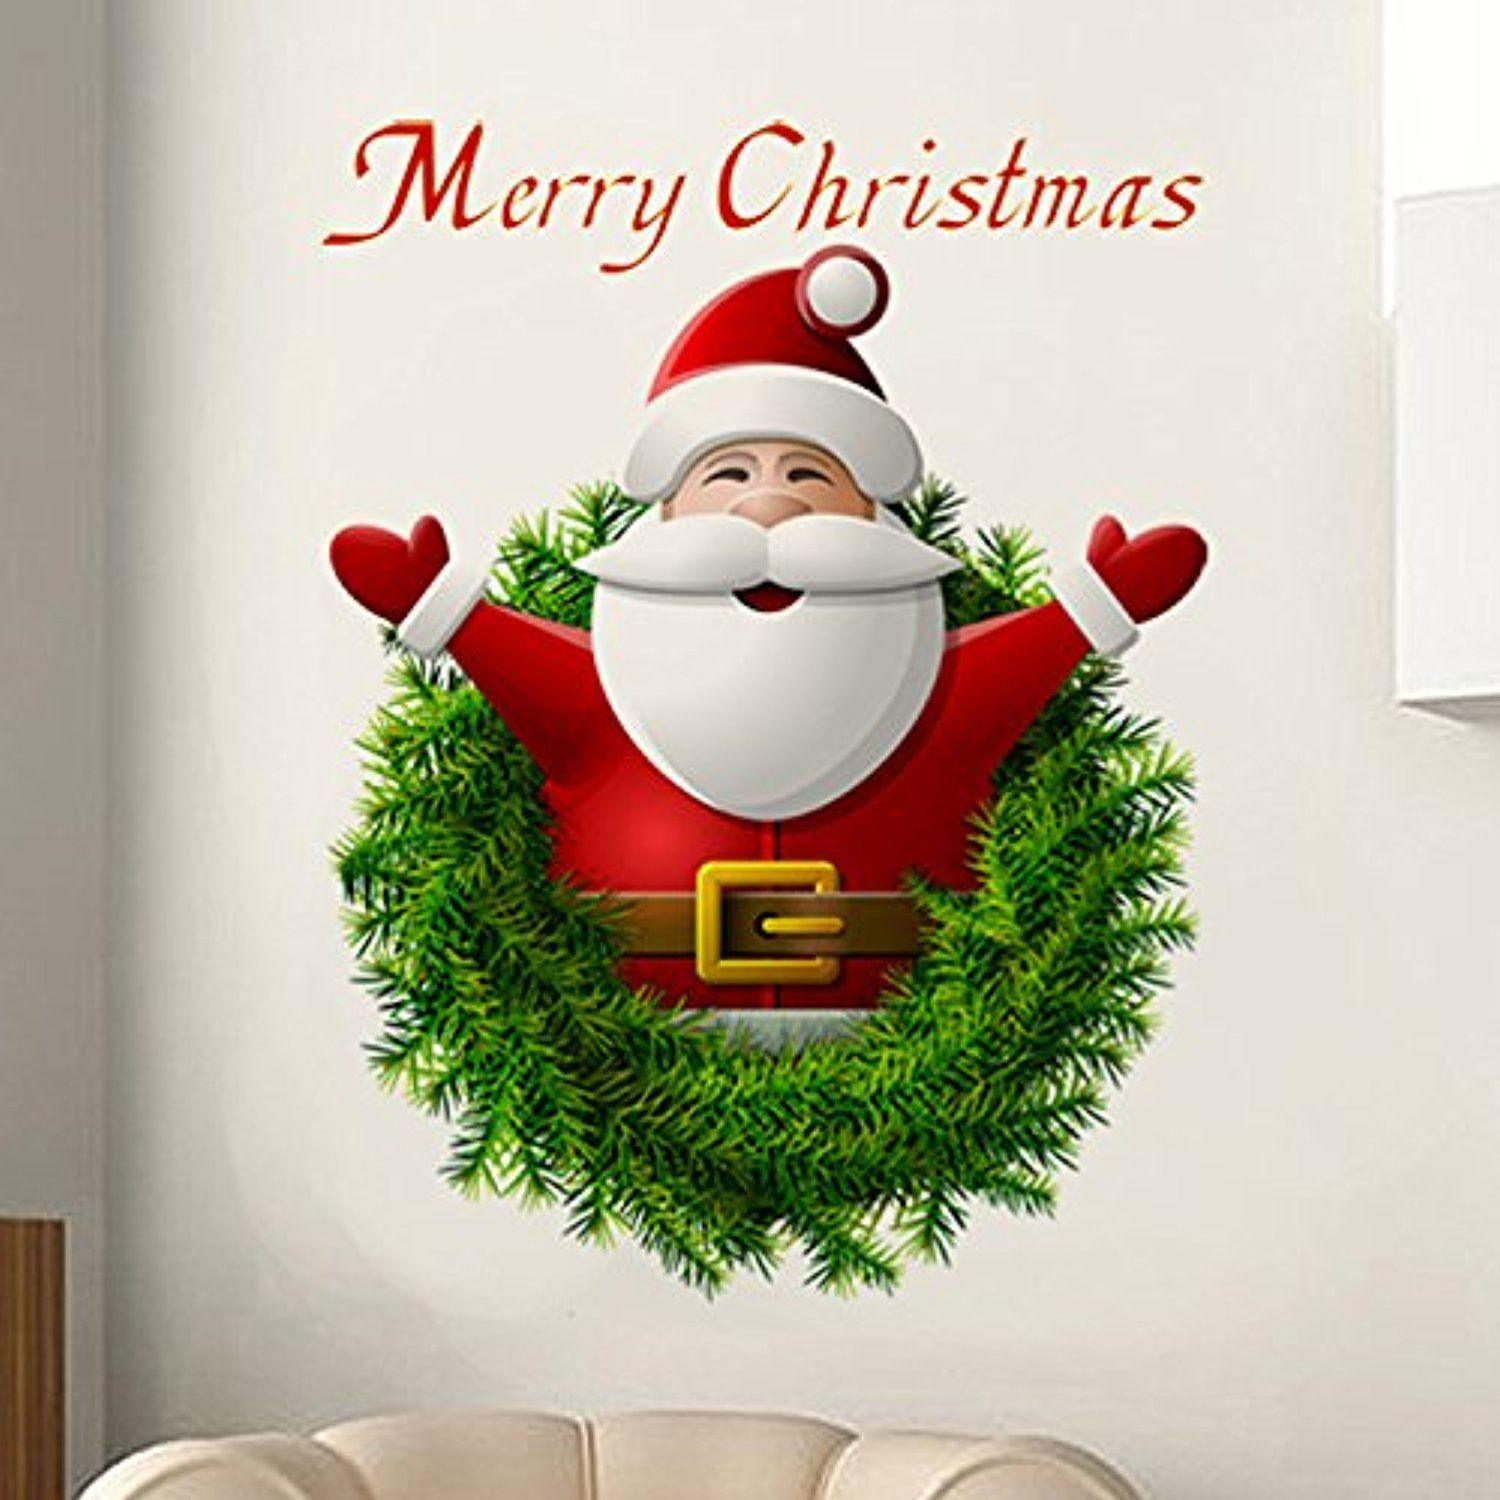 Window decor stickers  christmas windows stickers wall stickers d santa claus merry